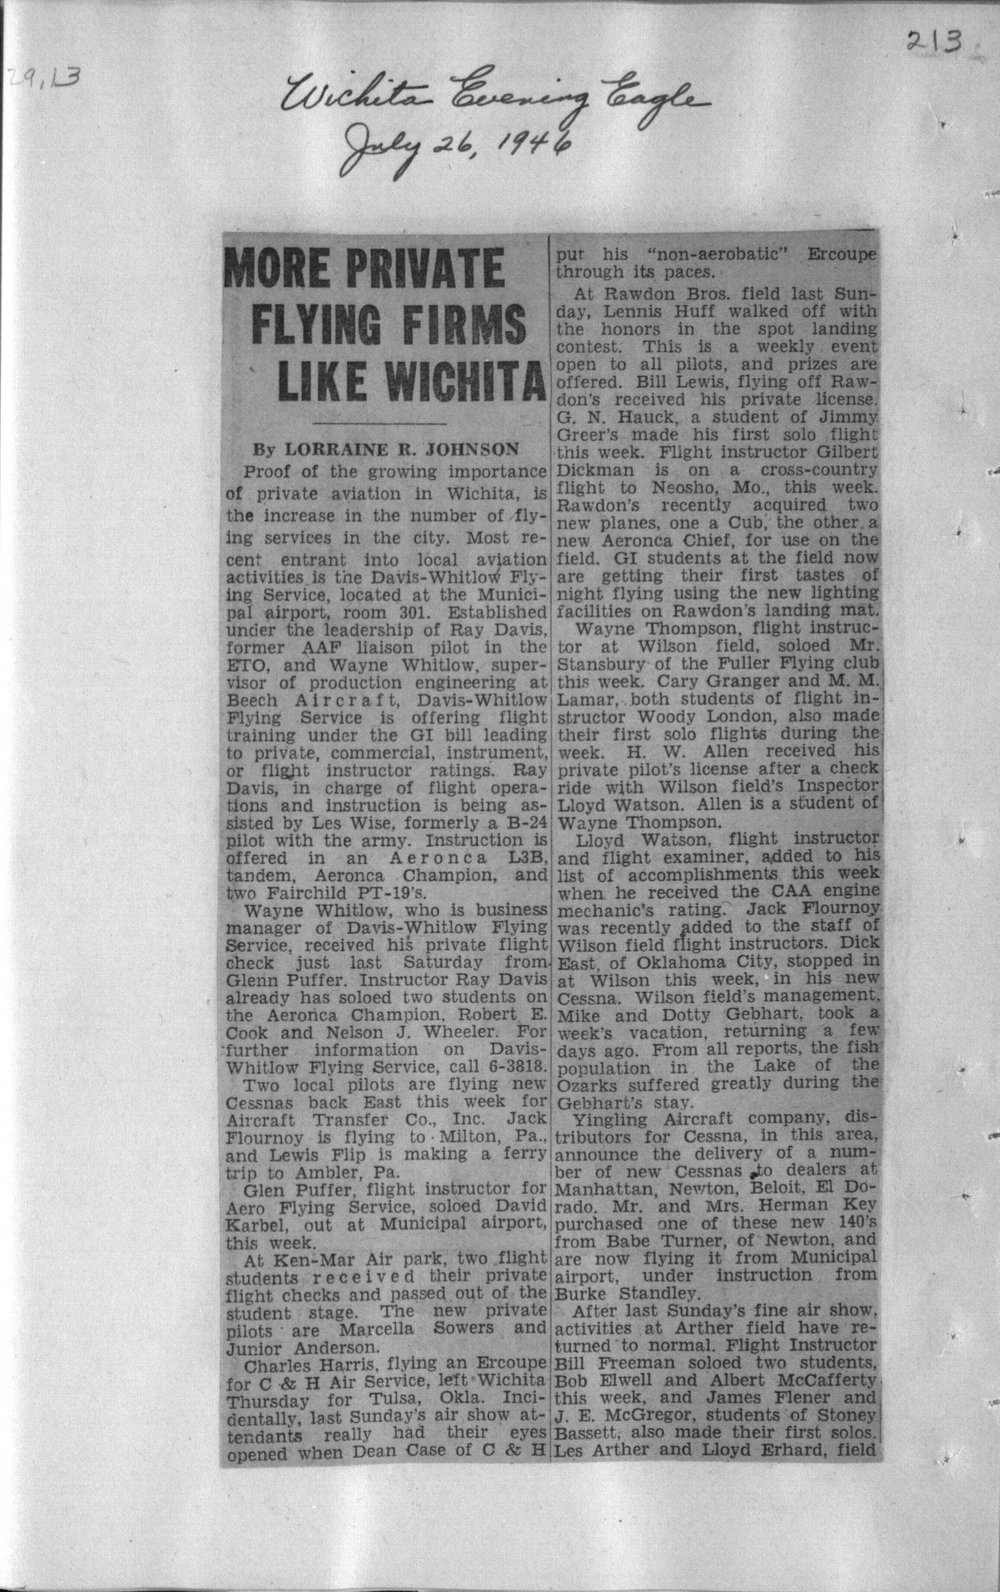 More private flying firms like Wichita - 213